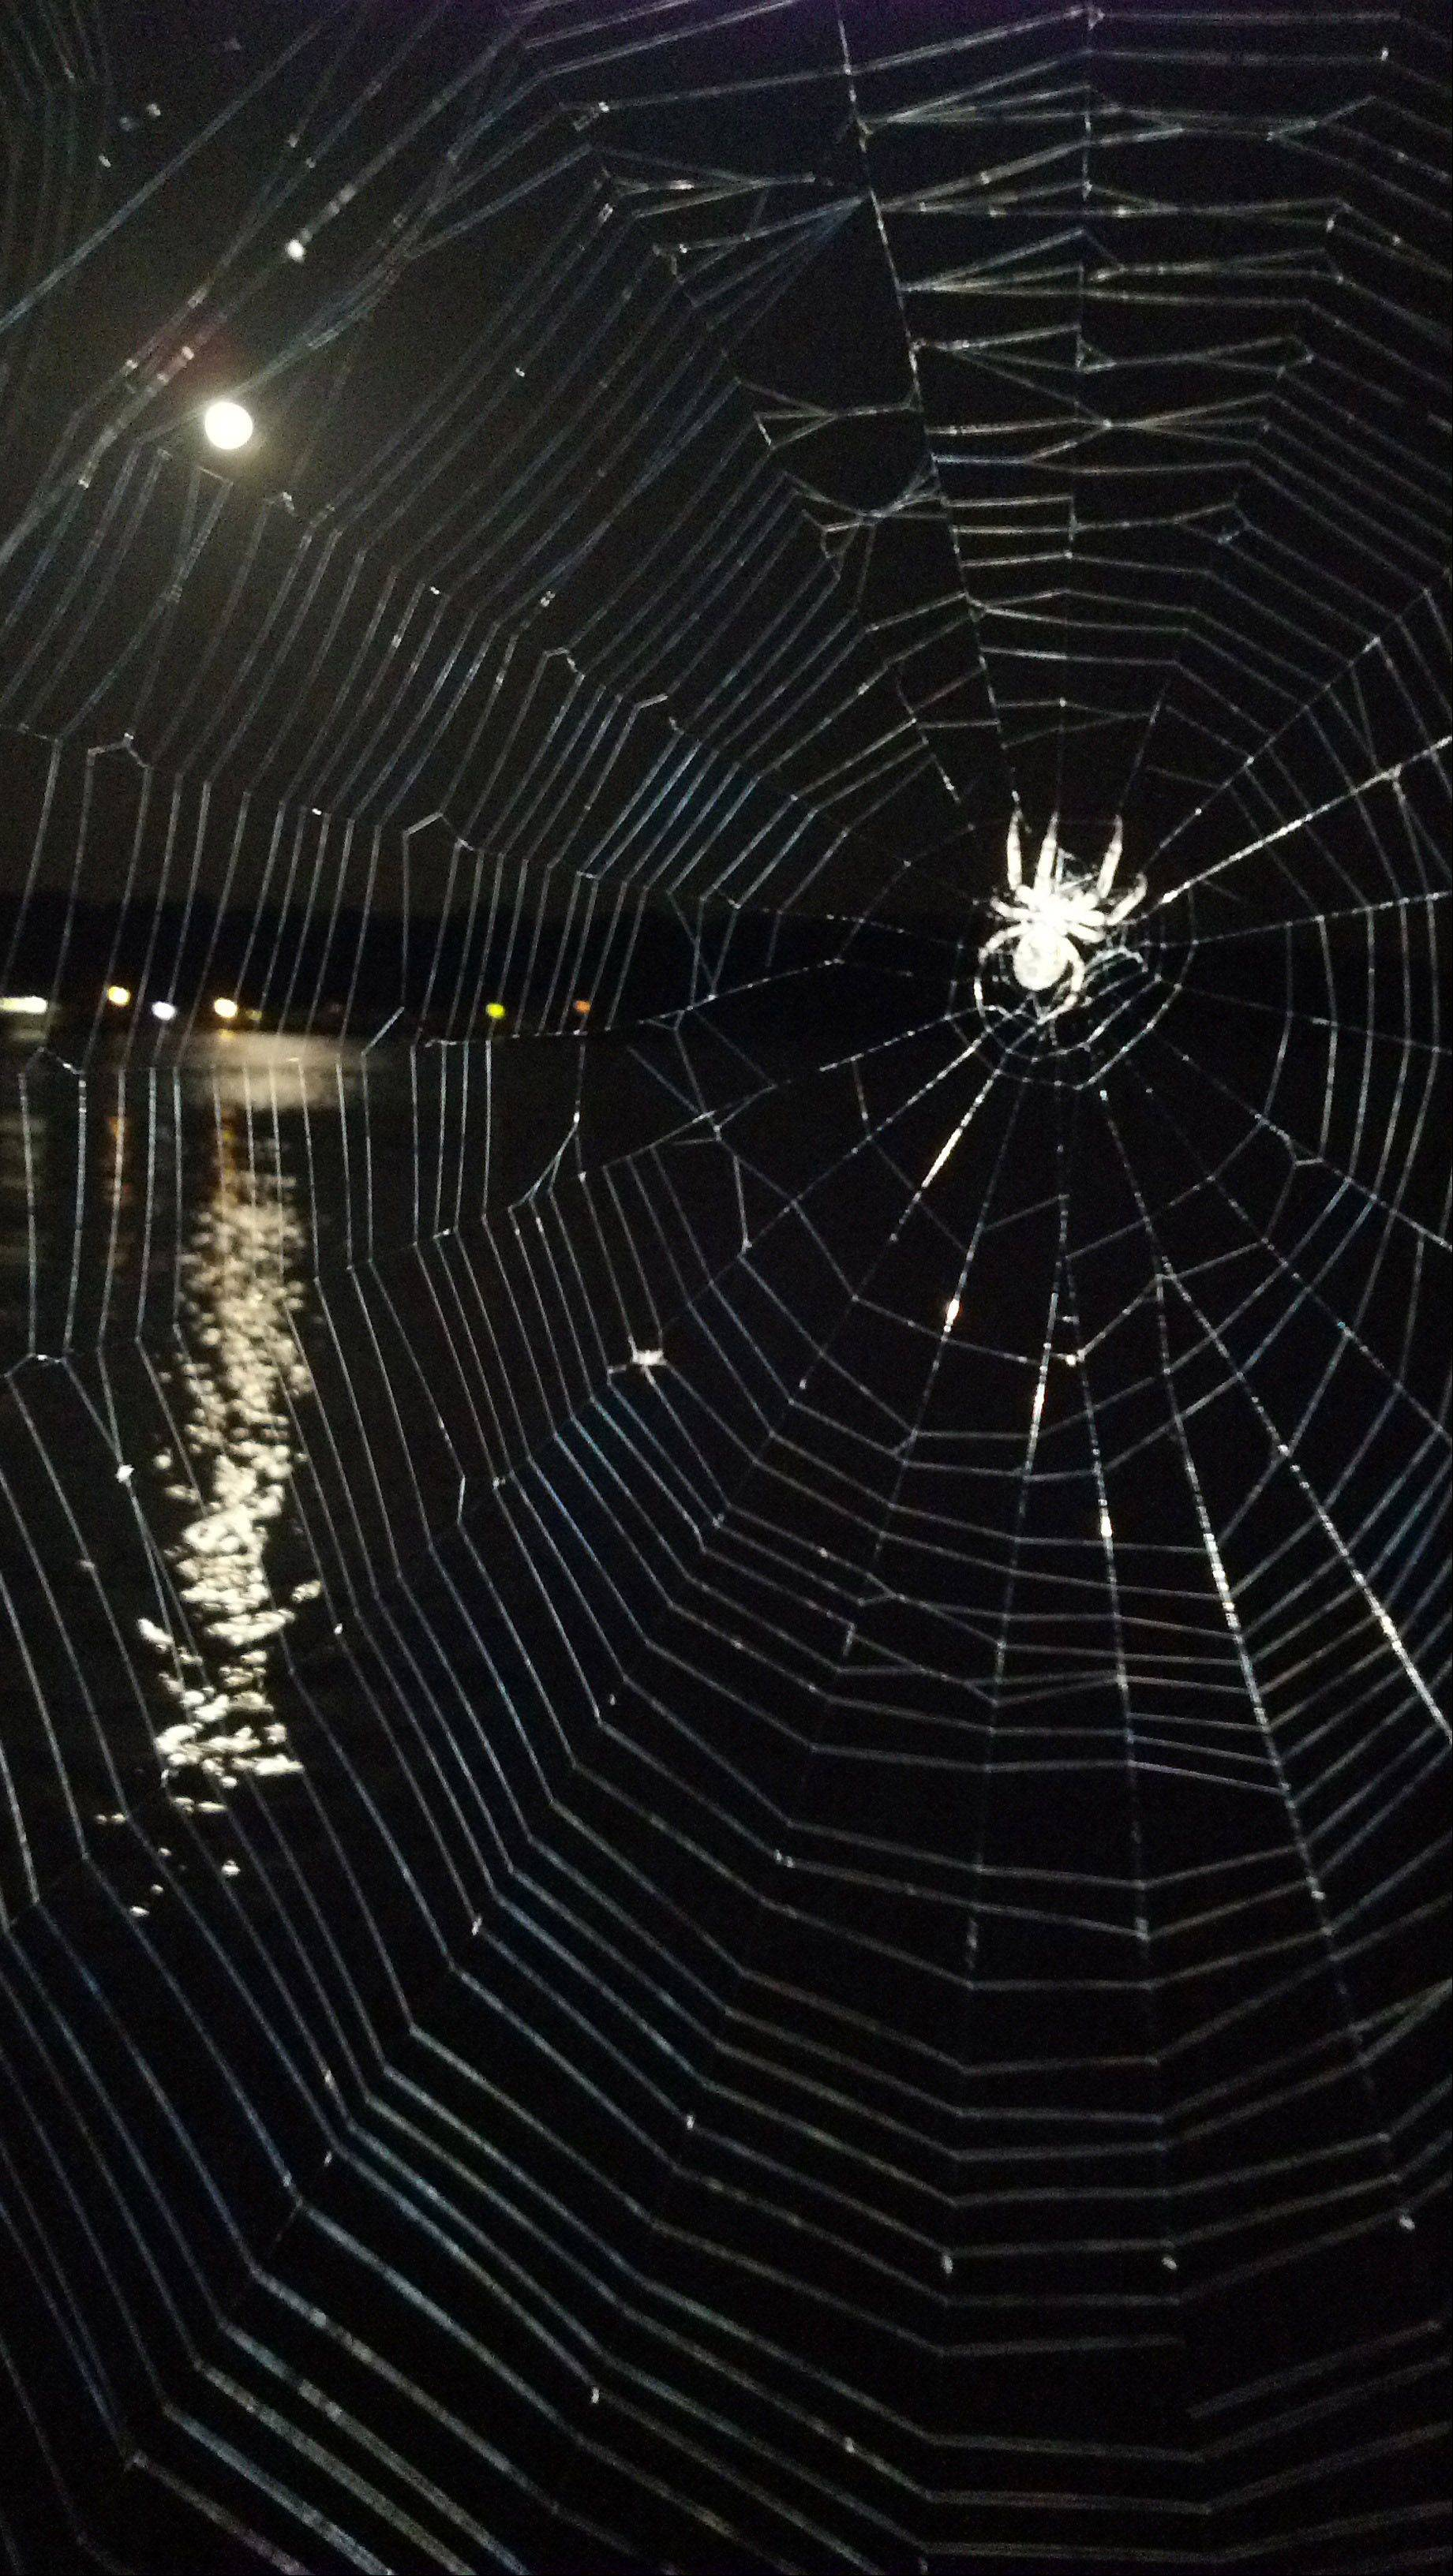 A spider reclines in a wonderfully spun web, basking in the moonlit sky, on the Fourth of July in Branson, Missouri.